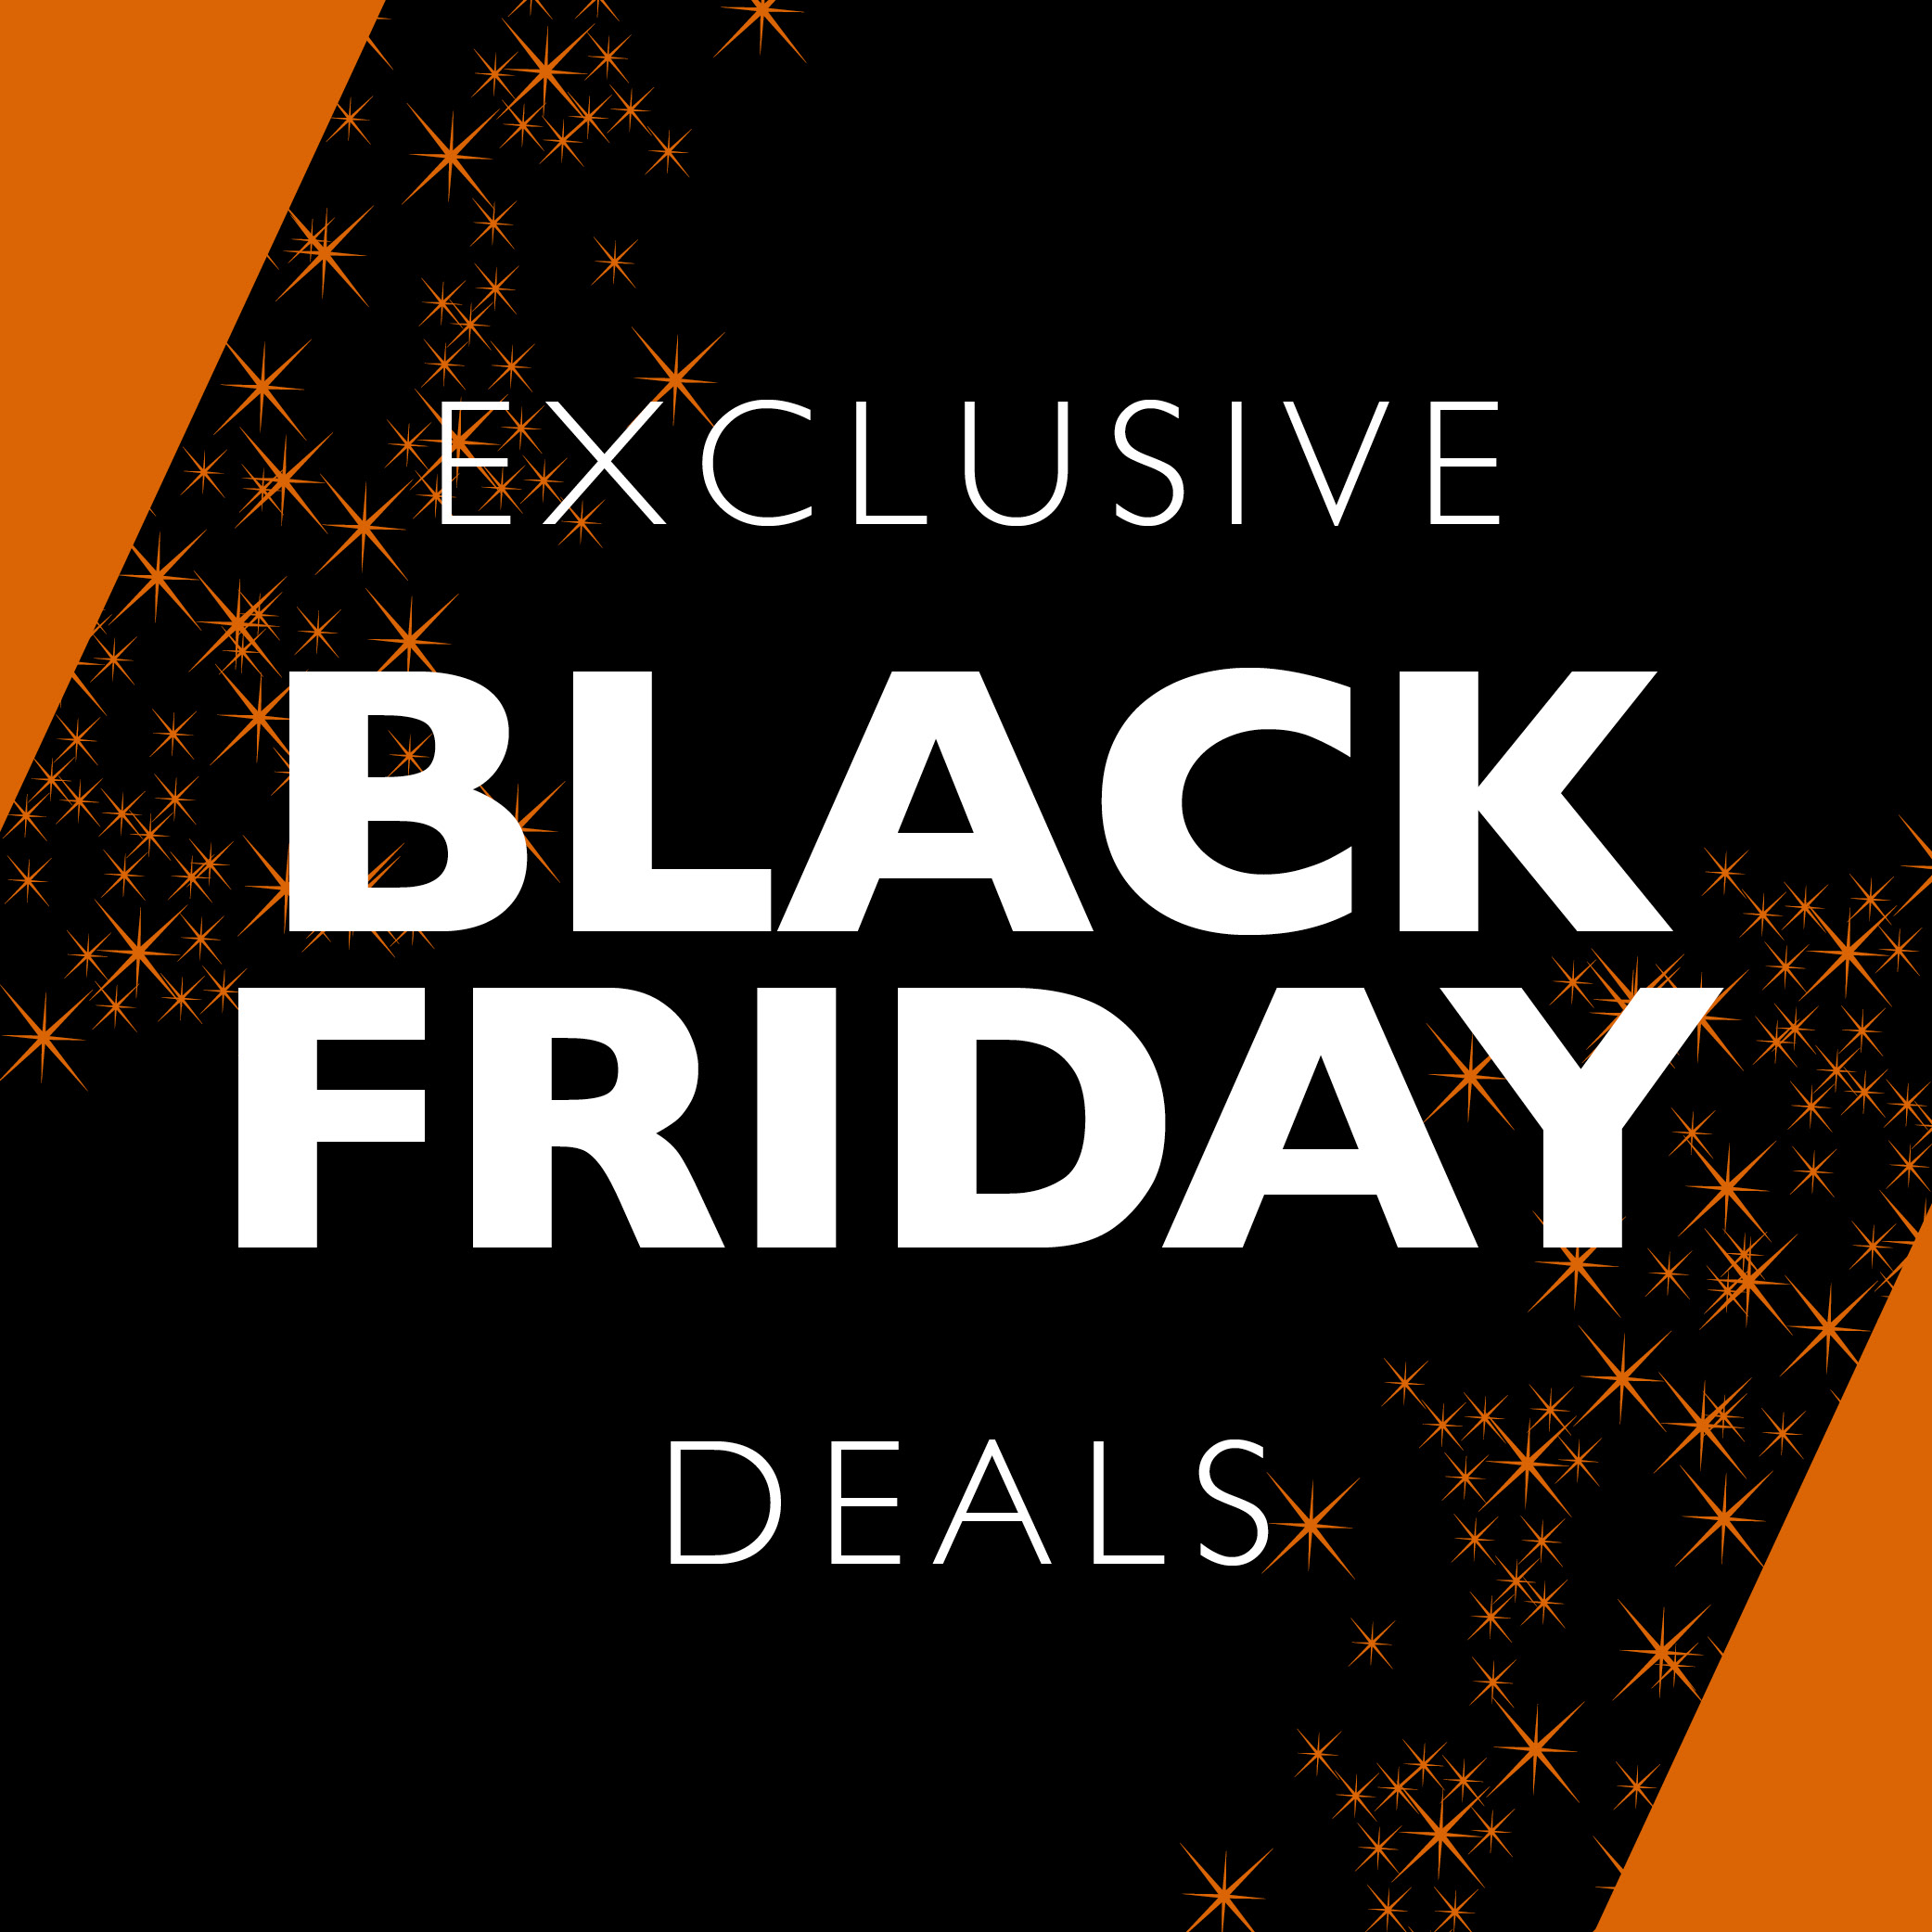 CPS Black Friday deals